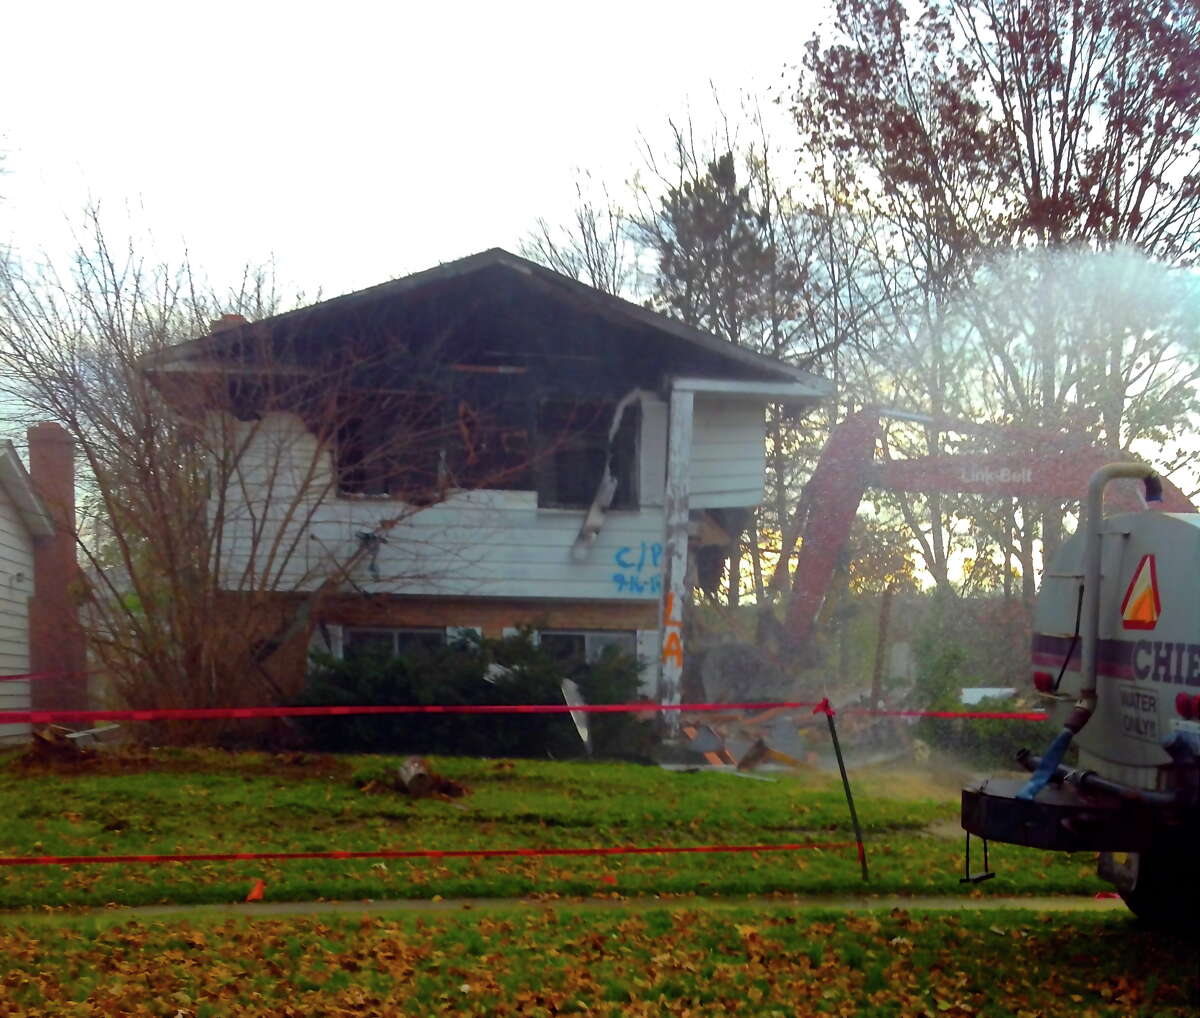 Crews demolish a Flint, Mich. home. The demolition was funded through a crowd-funding online site, Indiegogo